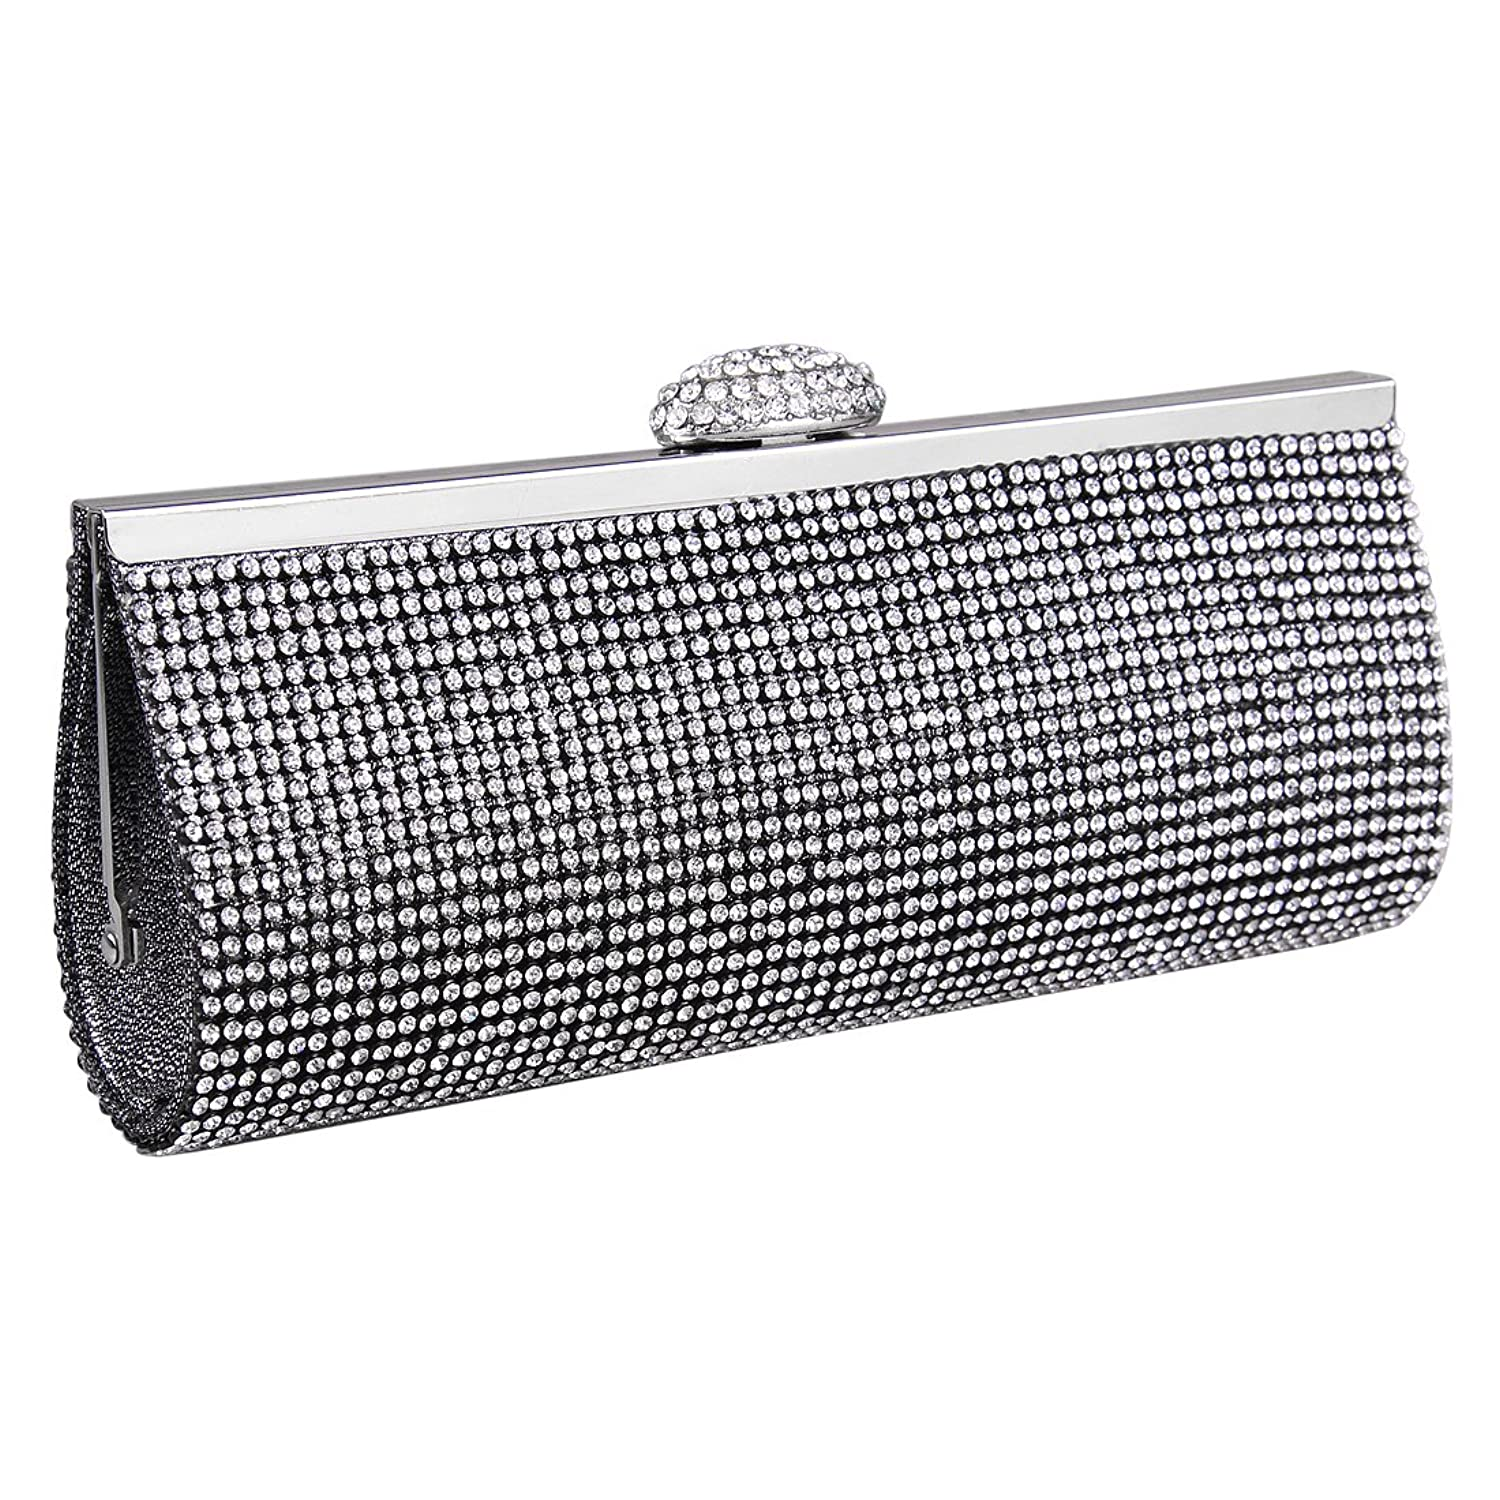 ECOSUSI Elegant Rhinestones Clasp Flap Clutch Evening Handbag Purse 16e2513fd06f5